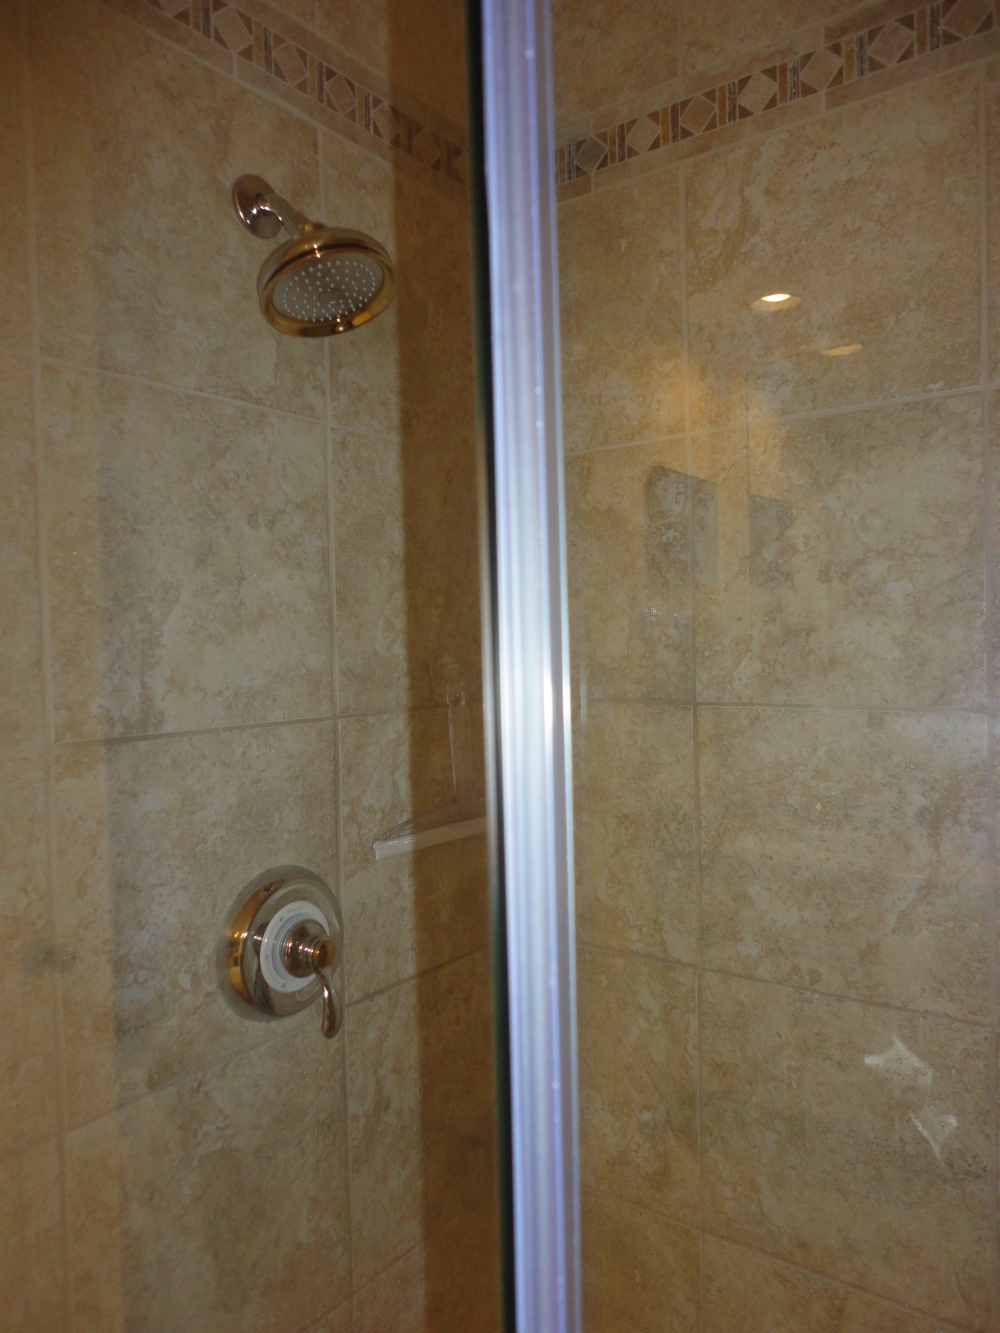 About Shower Doors, Frameless Doors, Glass Enclosures: How They ...